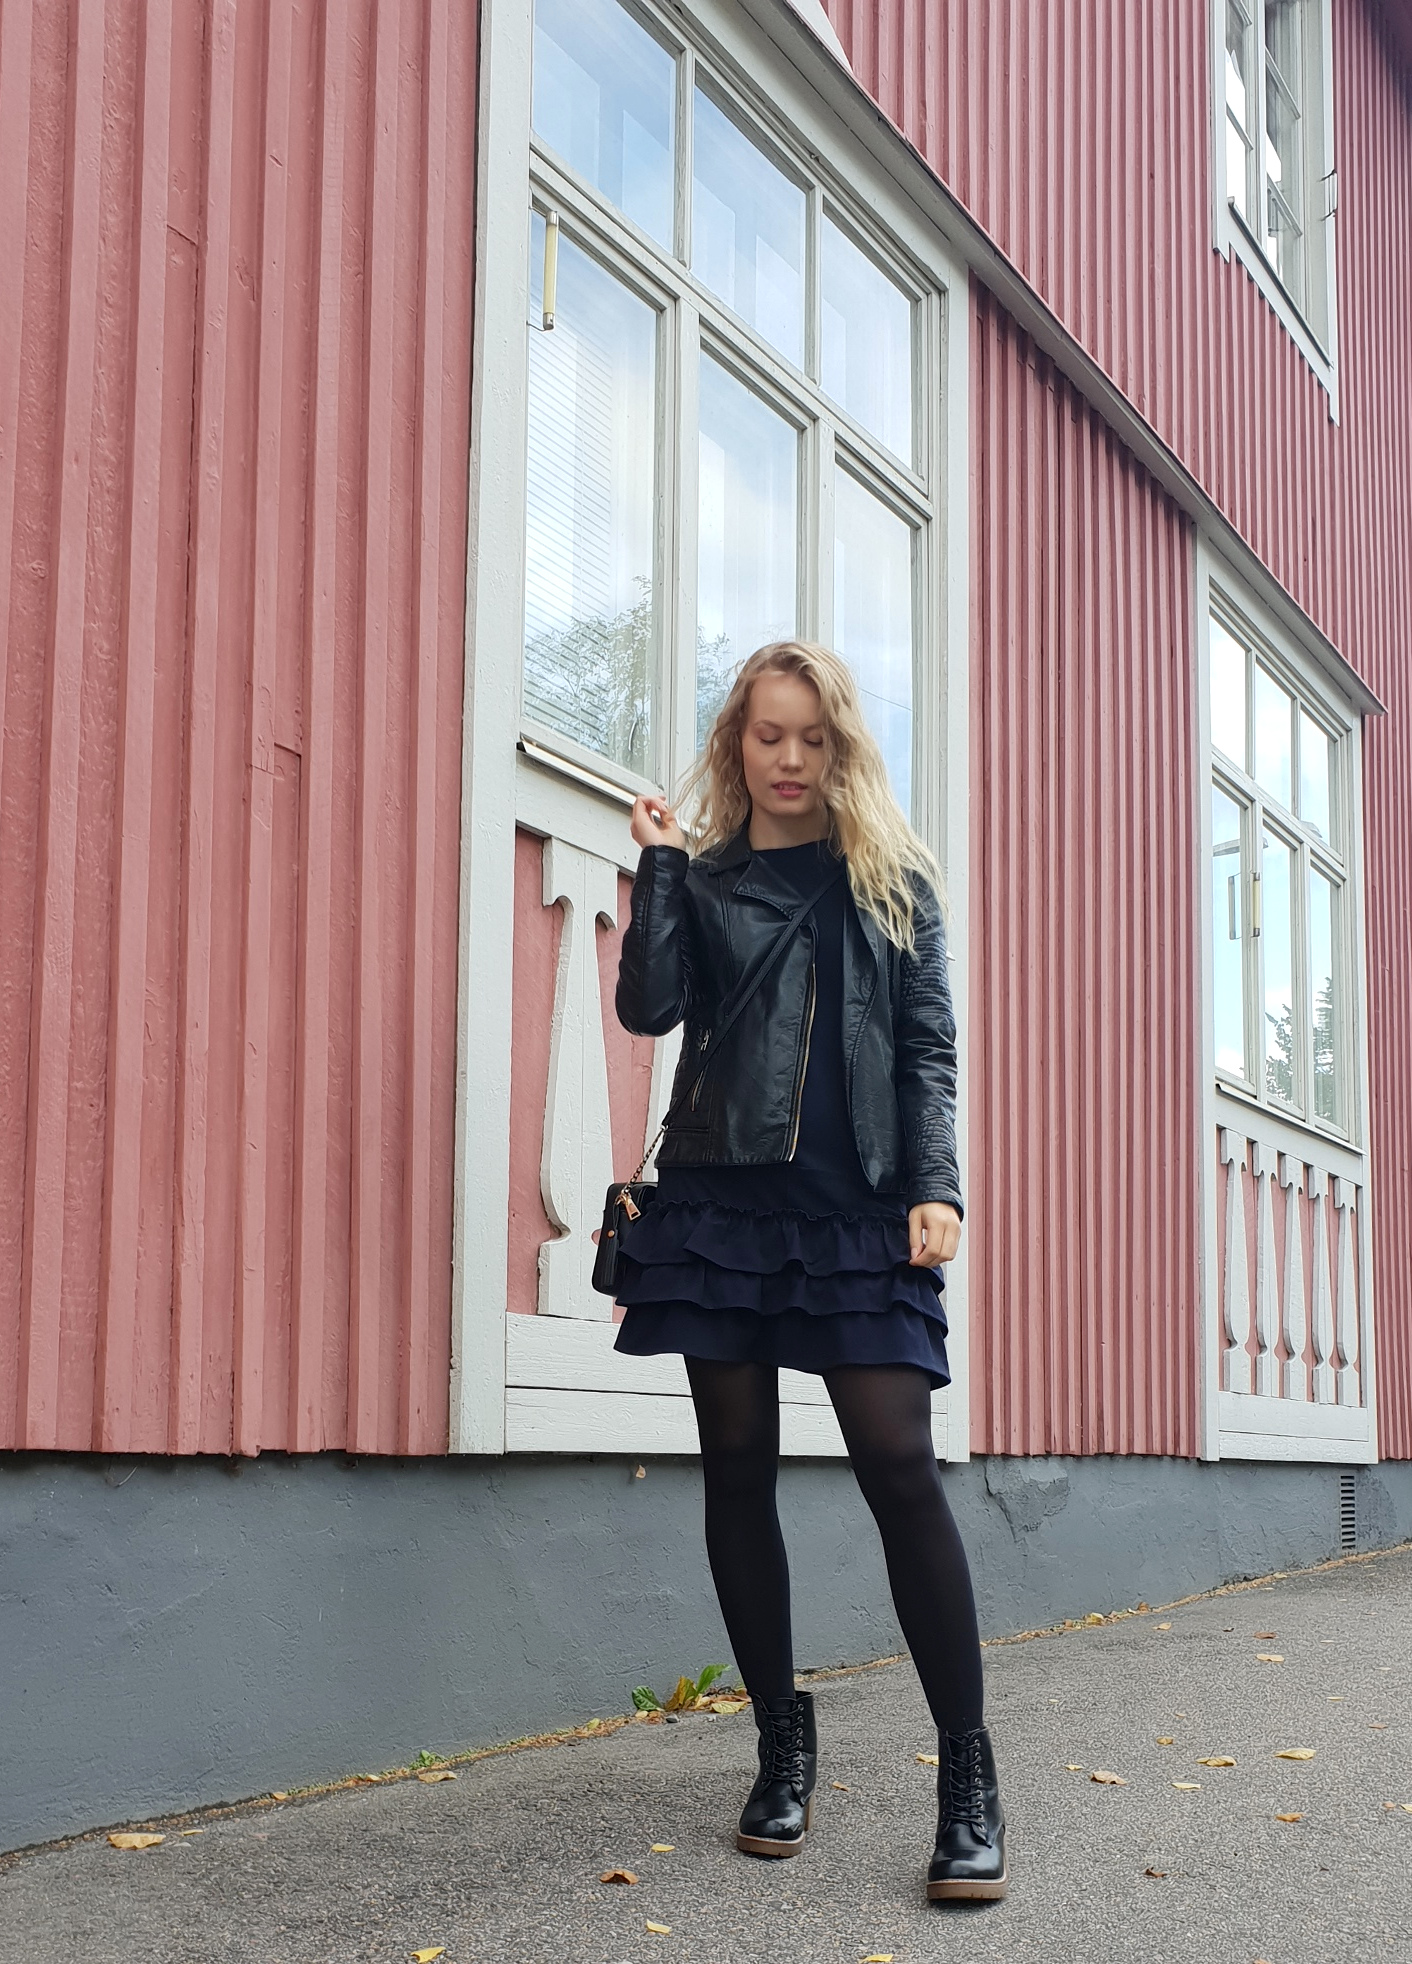 style outfit fall